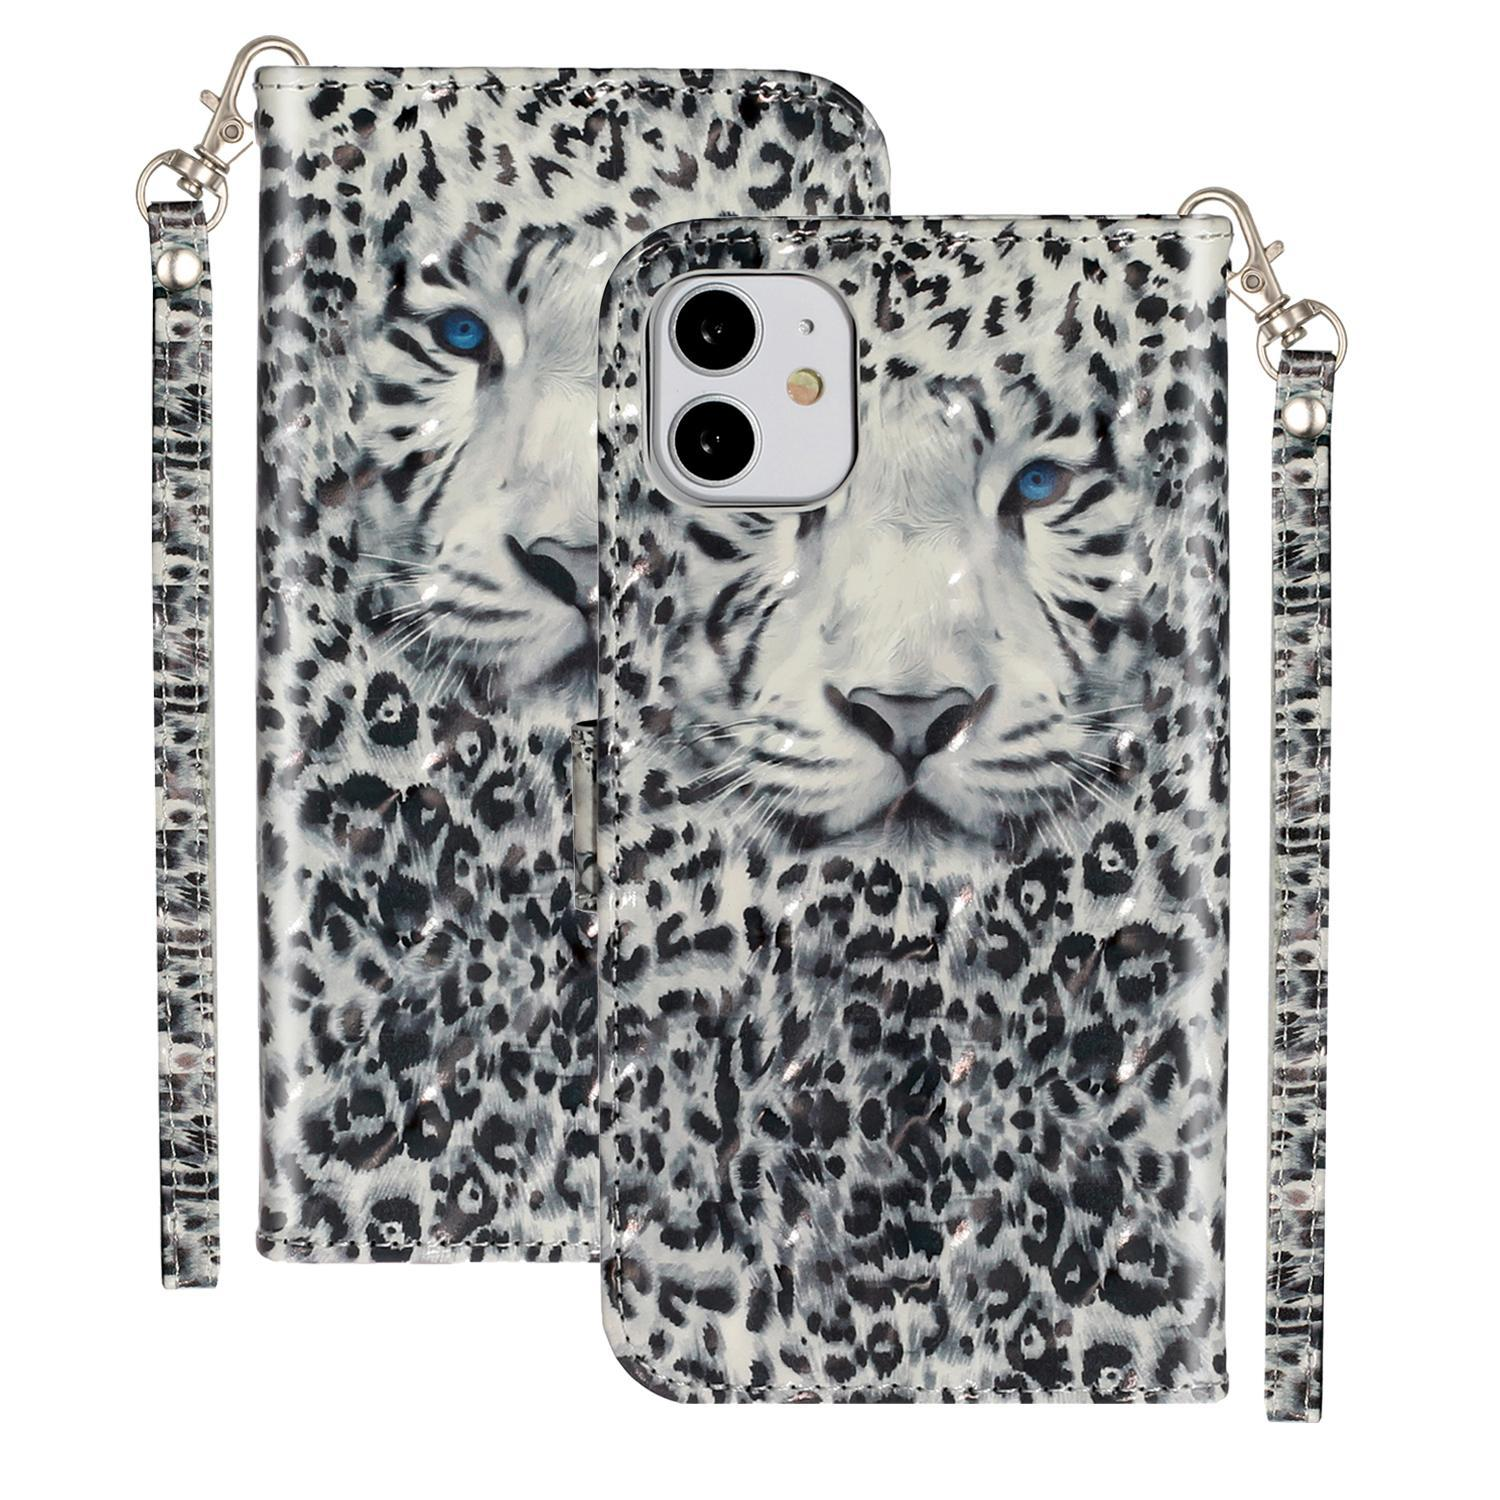 3D Leopard Leather Wallet Case For Iphone 11 Pro Max XR XS MAX 8 7 6 5 Wolf Cat Marble Flower Flip Cover Luxury Card Slot ID Holder Pouch